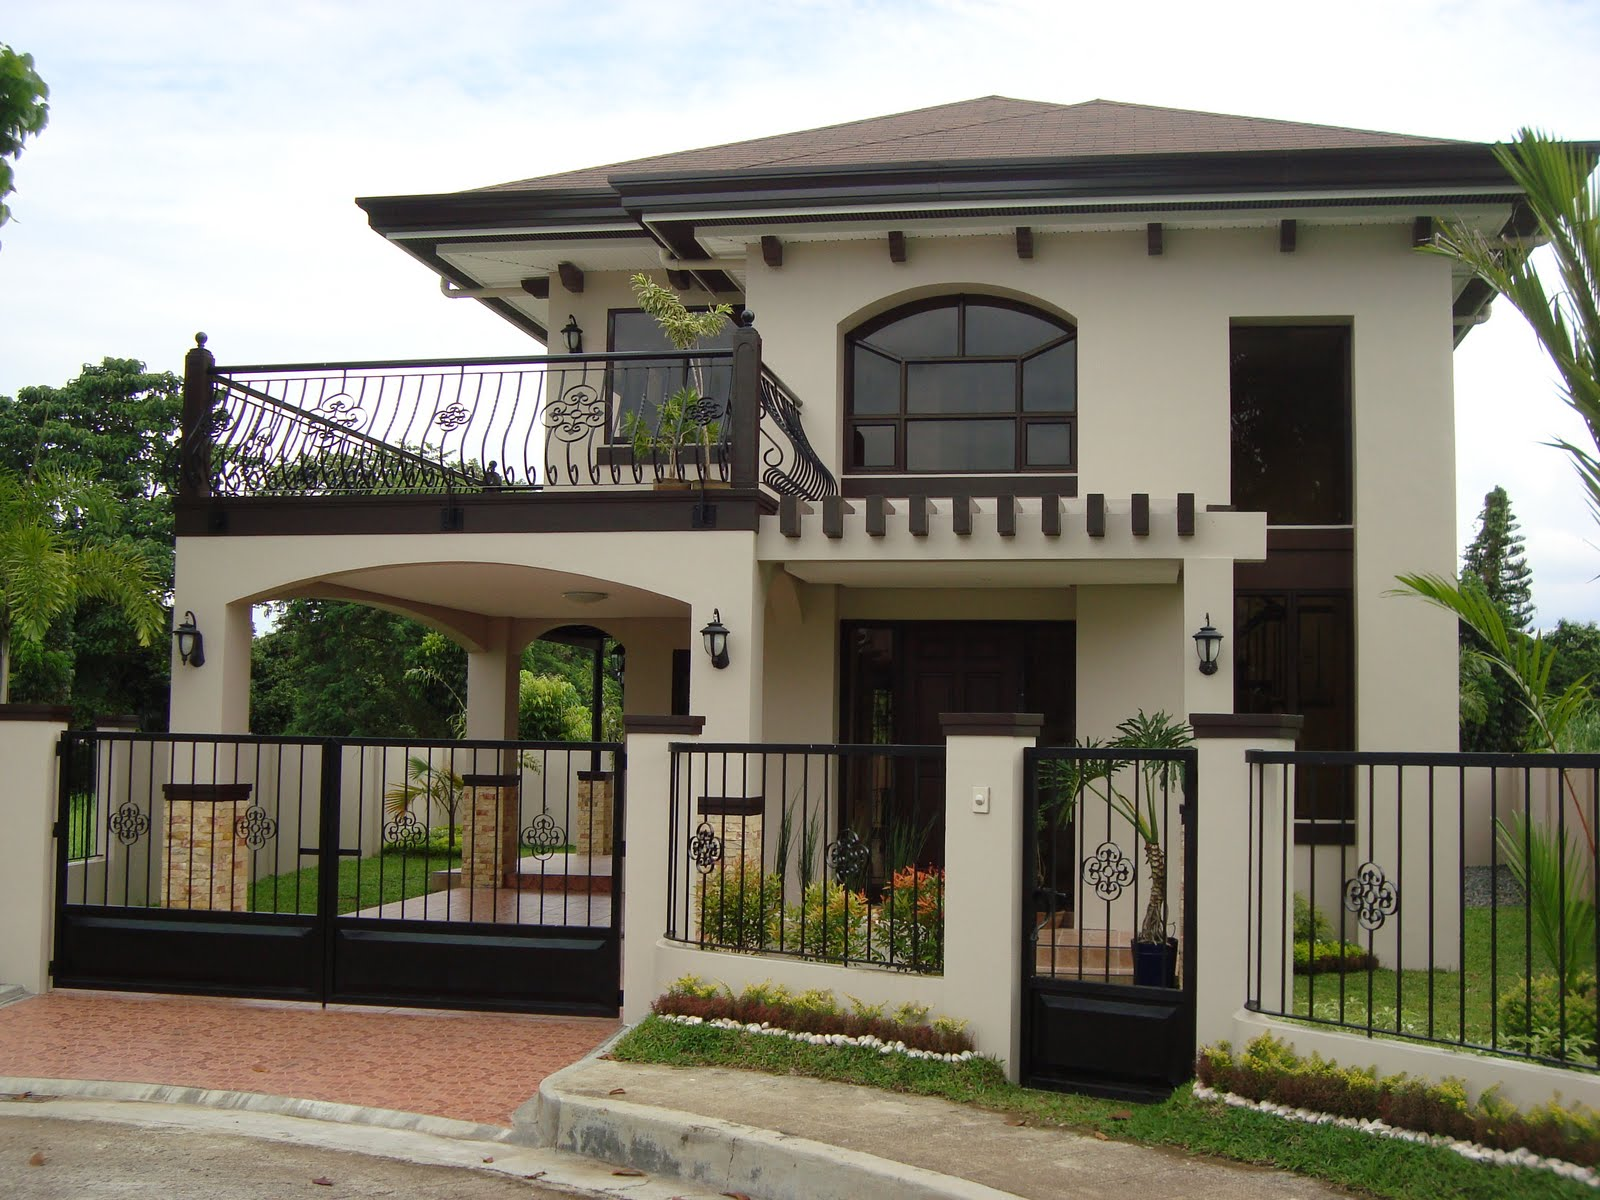 Tidbits of life 2 storey house mediterannian design for Philippines house design 2 storey